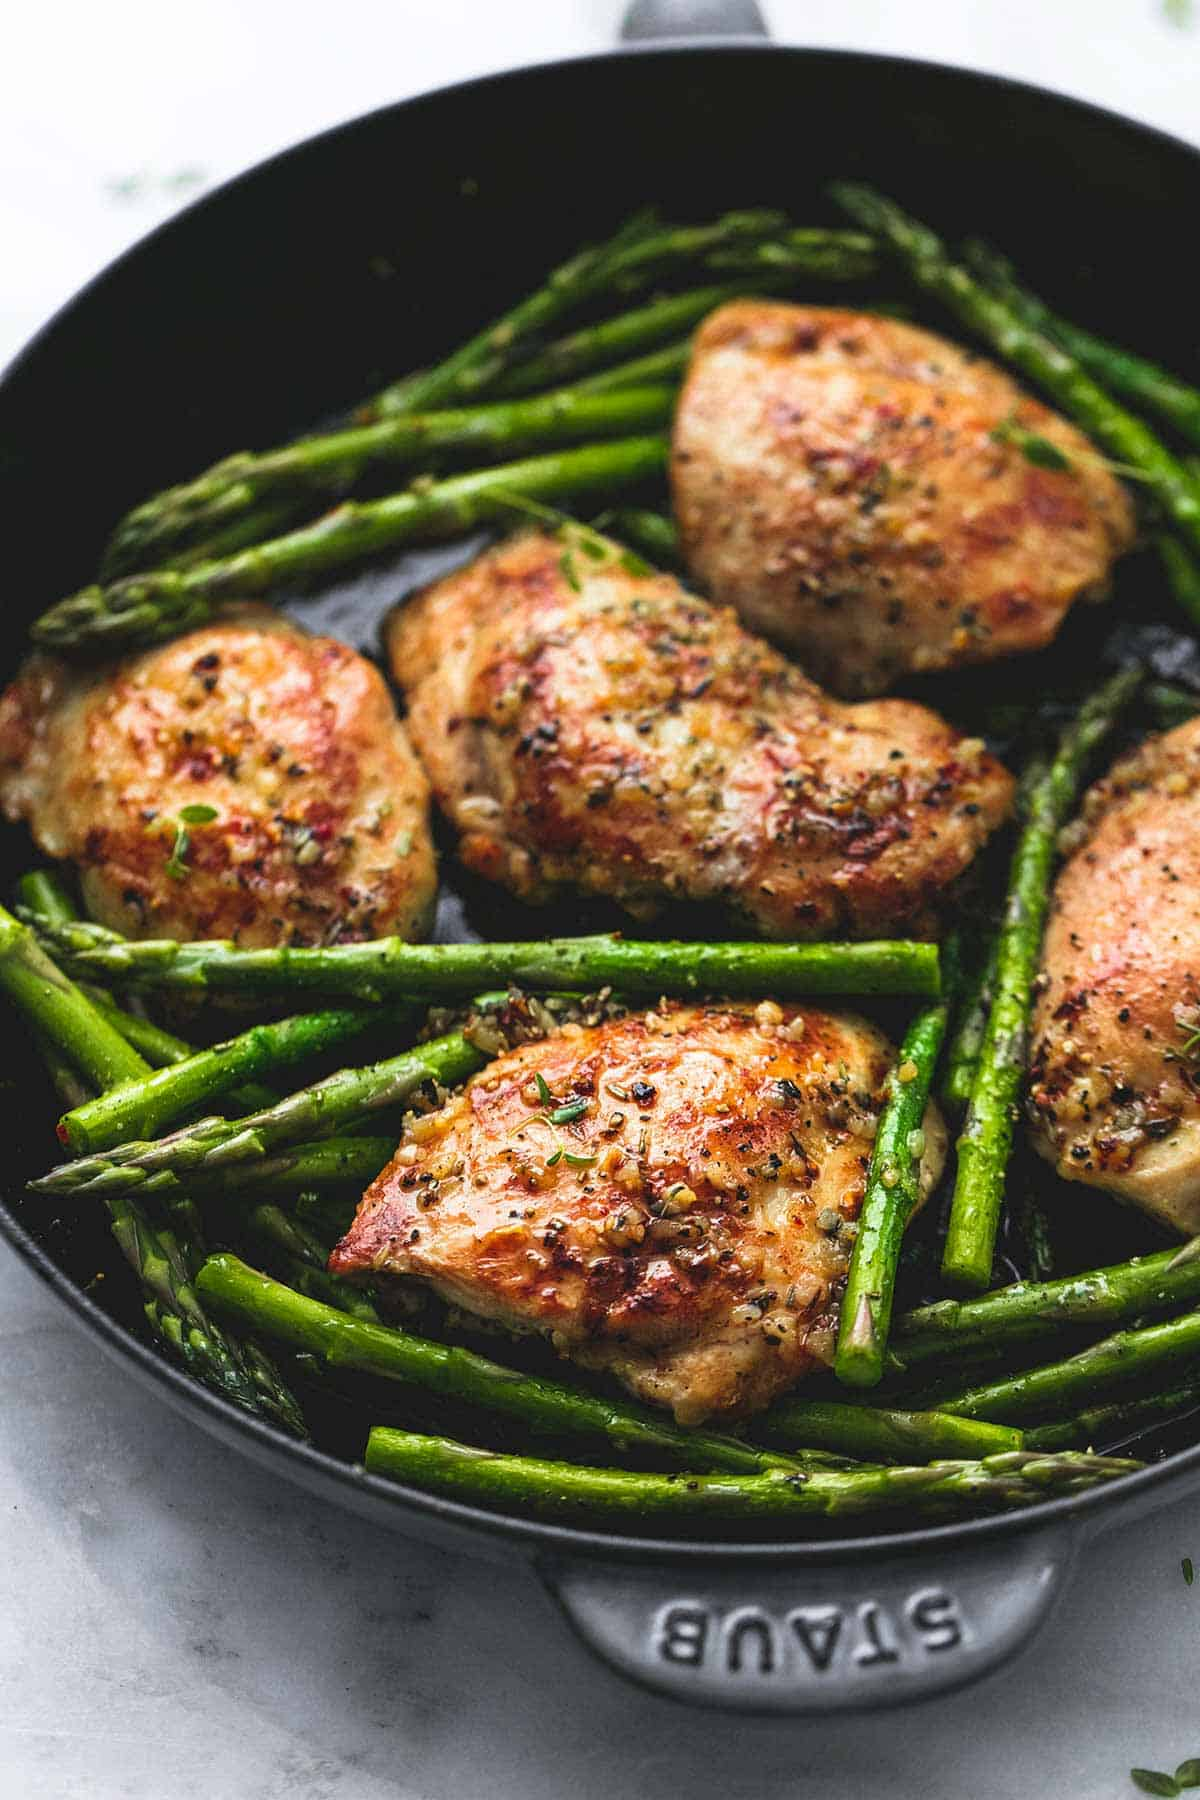 garlic herb chicken and asparagus in a pan.